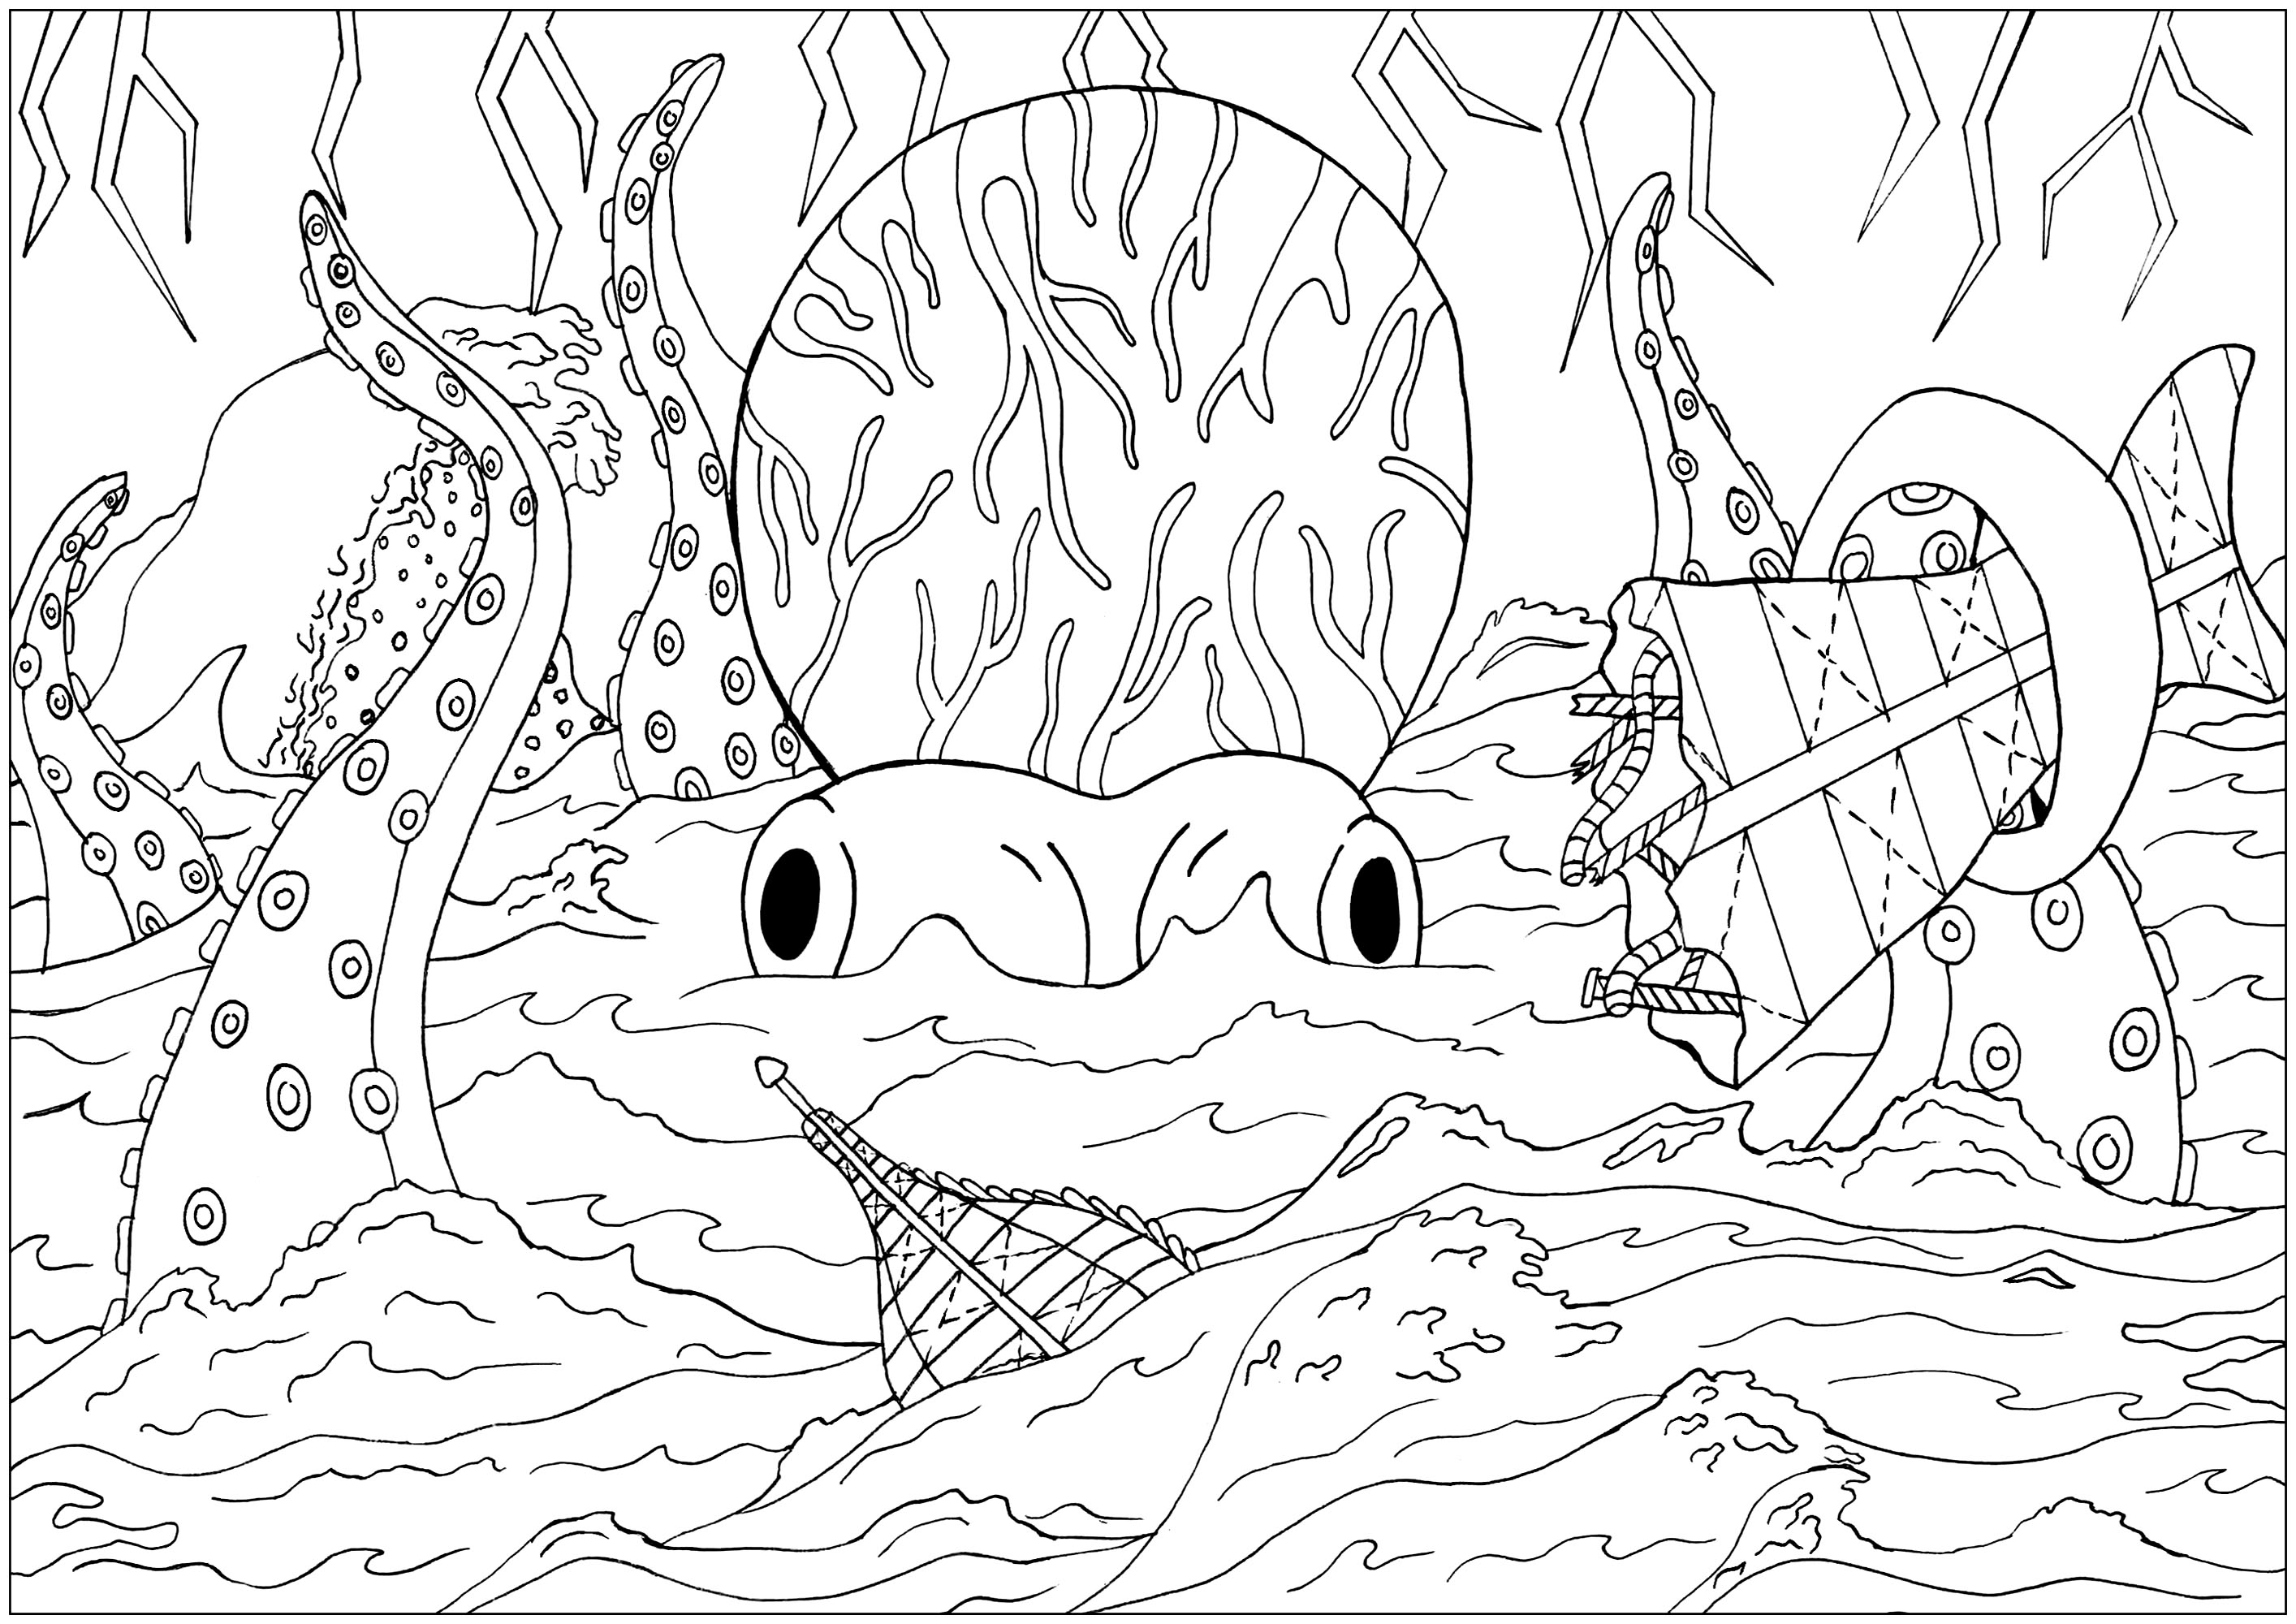 Coloring page inspired by the jules vernes novel 20 000 leagues under the sea